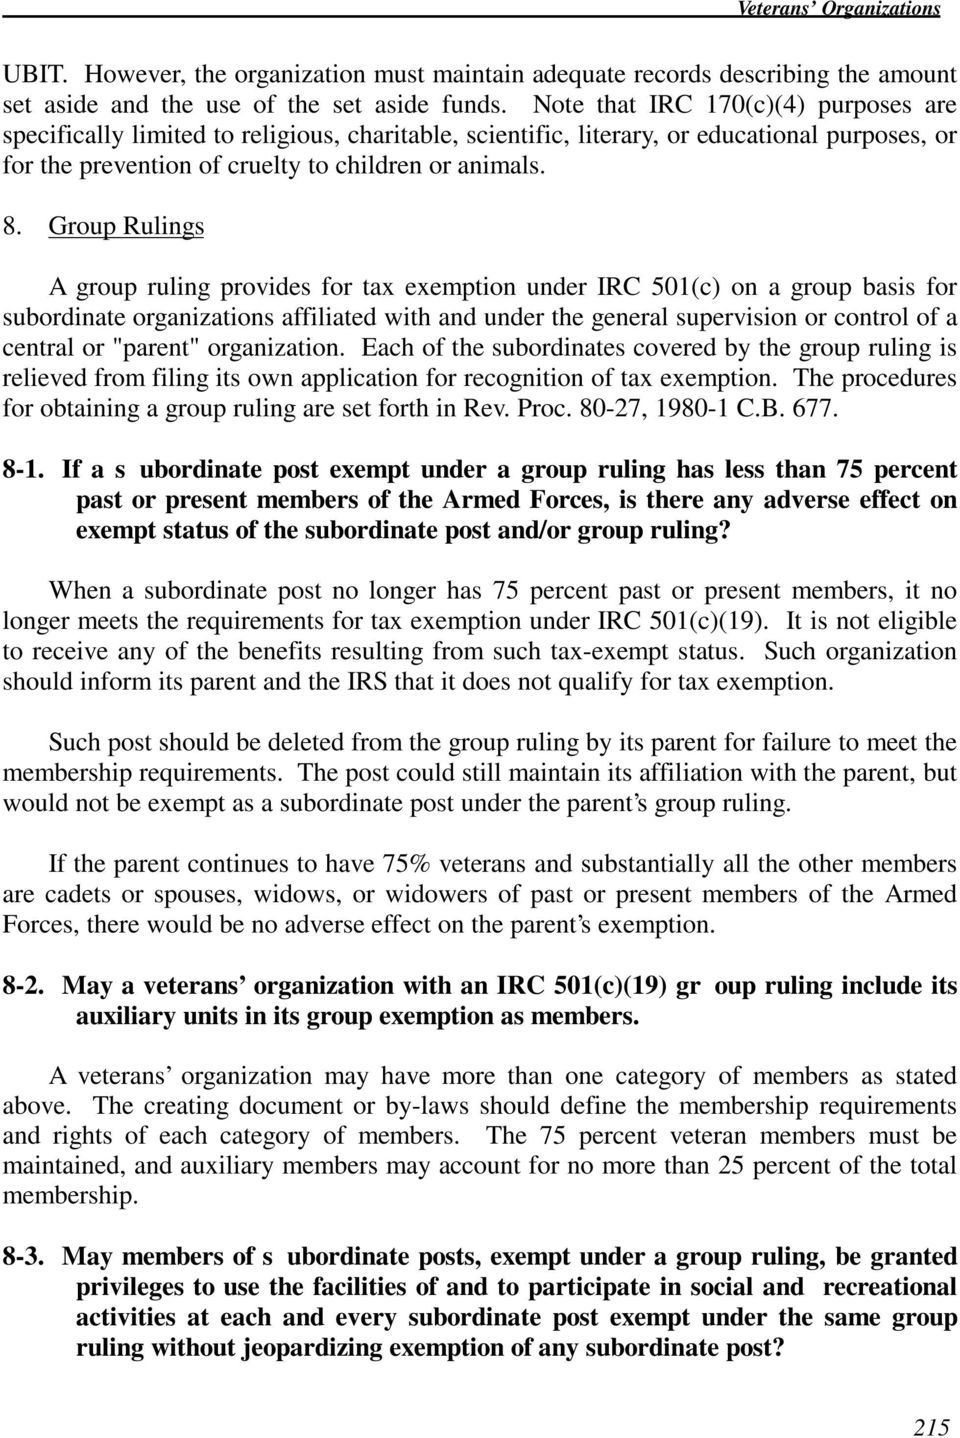 Group Rulings A group ruling provides for tax exemption under IRC 501(c) on a group basis for subordinate organizations affiliated with and under the general supervision or control of a central or